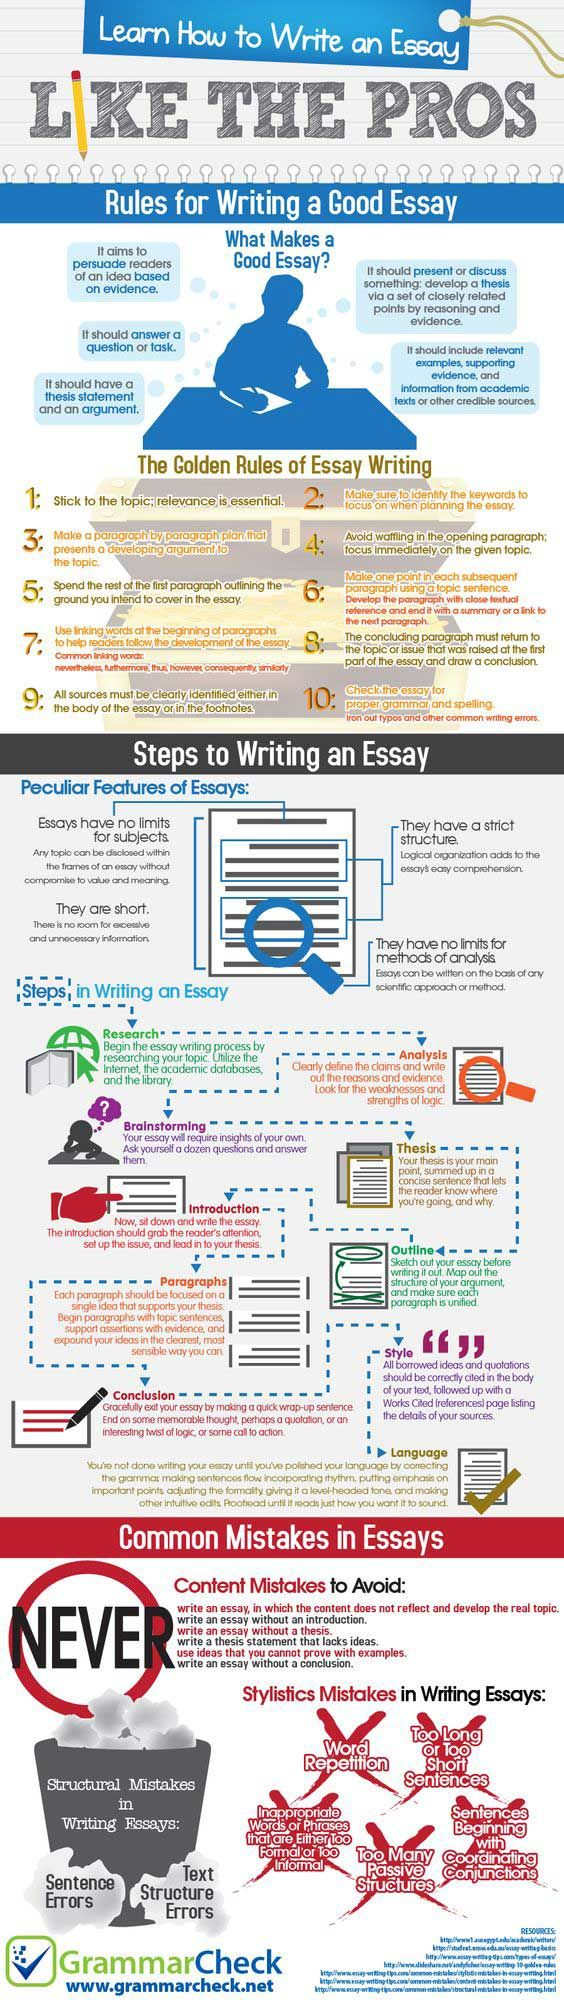 Apa Essay Paper Best  High School Hacks Ideas On Pinterest  School Study Tips High  School Tips And High School Essentials Health Care Essay also High School Persuasive Essay Best  High School Hacks Ideas On Pinterest  School Study Tips  Thesis Statement For Comparison Essay